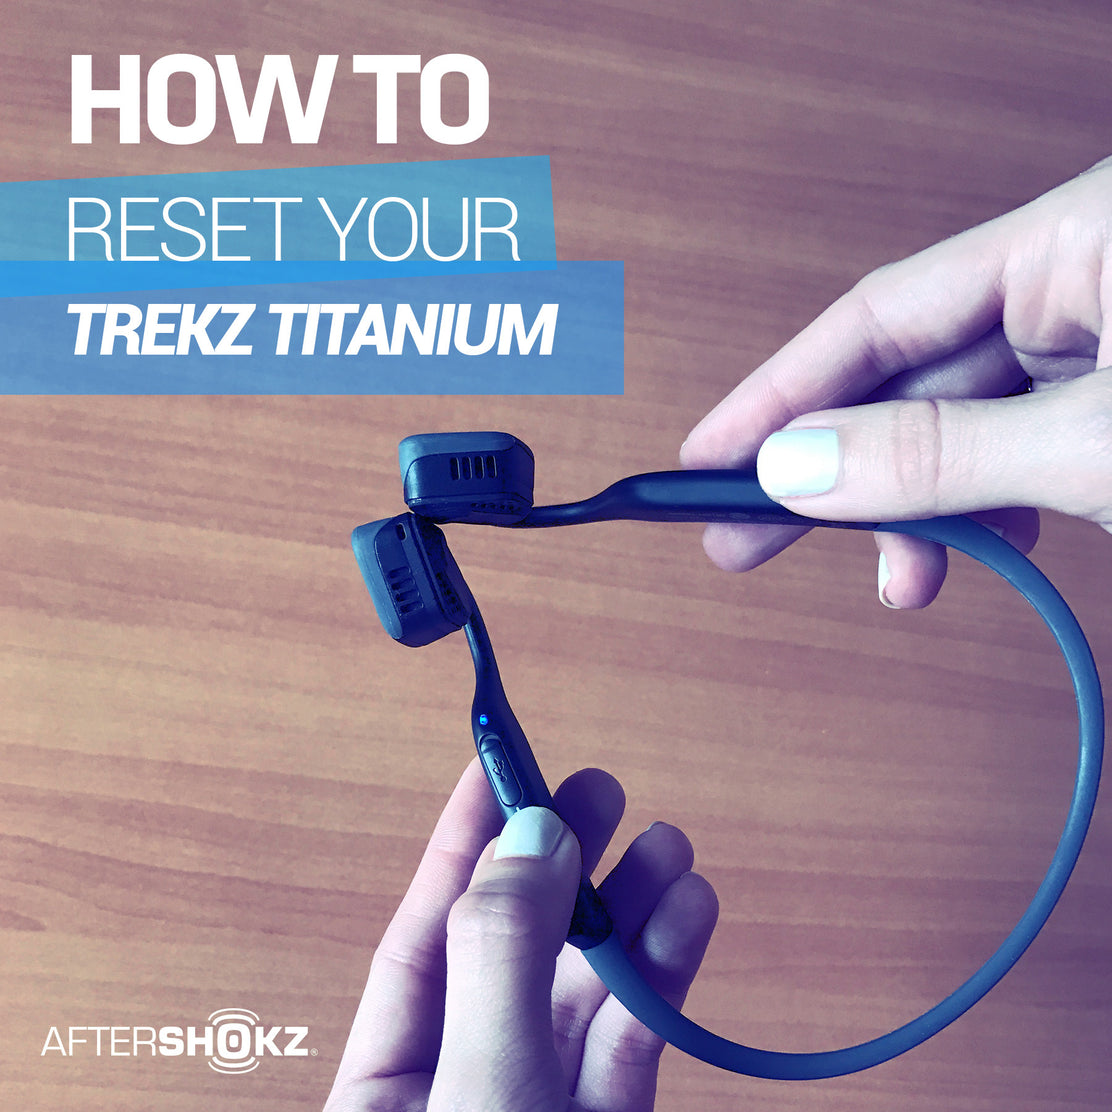 How To Manually Reset Your Titanium